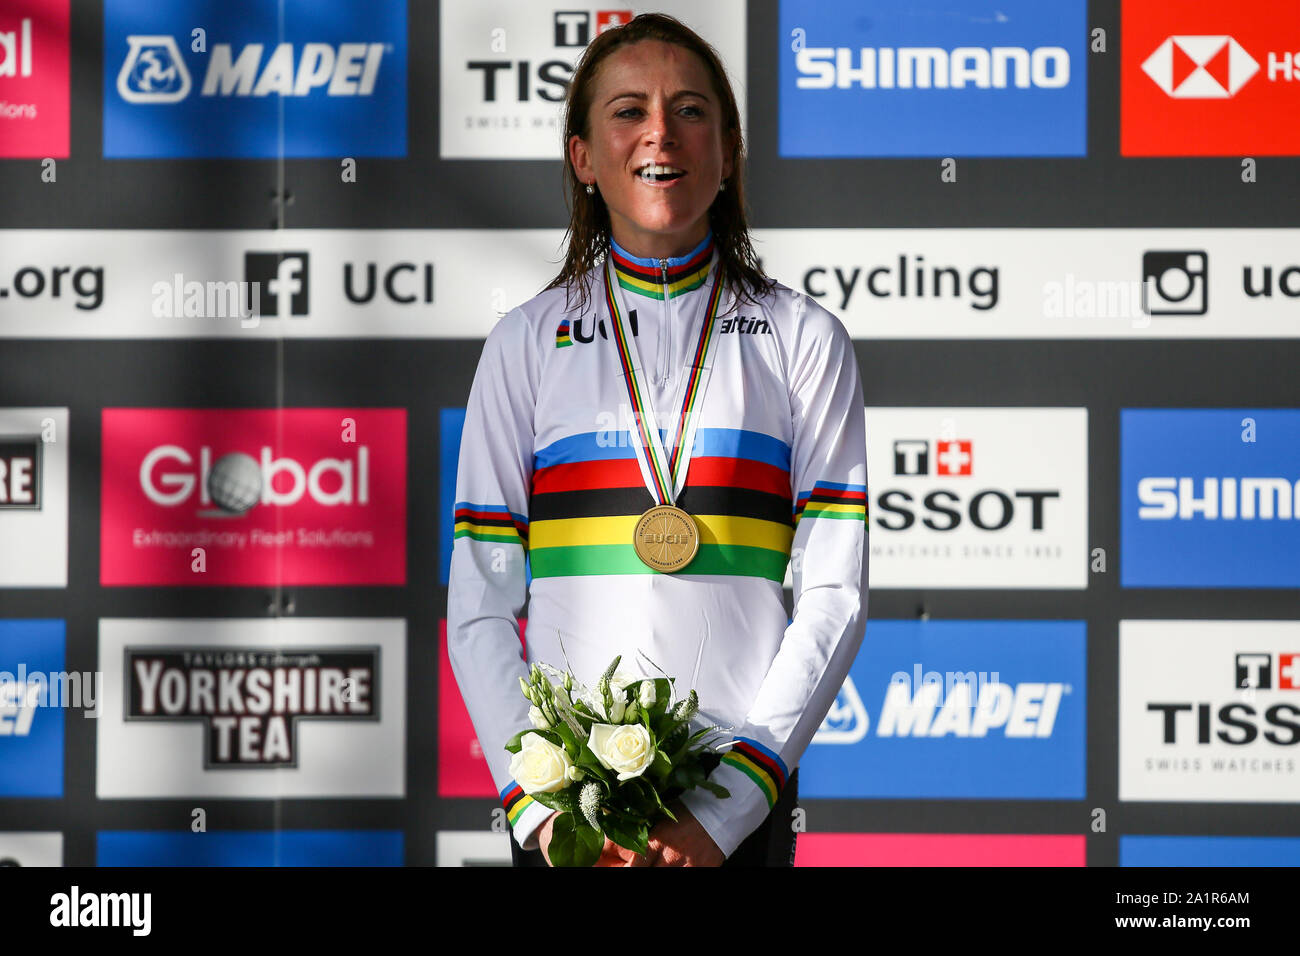 Harrogate, UK. 28th Sep, 2019. Annemiek Van Vleuten of the Netherlands takes Gold with a time of 4:06:05 in the 2019 UCI Road World Championships Womens Elite Road Race. September 28, 2019 Credit Dan-Cooke/Alamy Live News Stock Photo